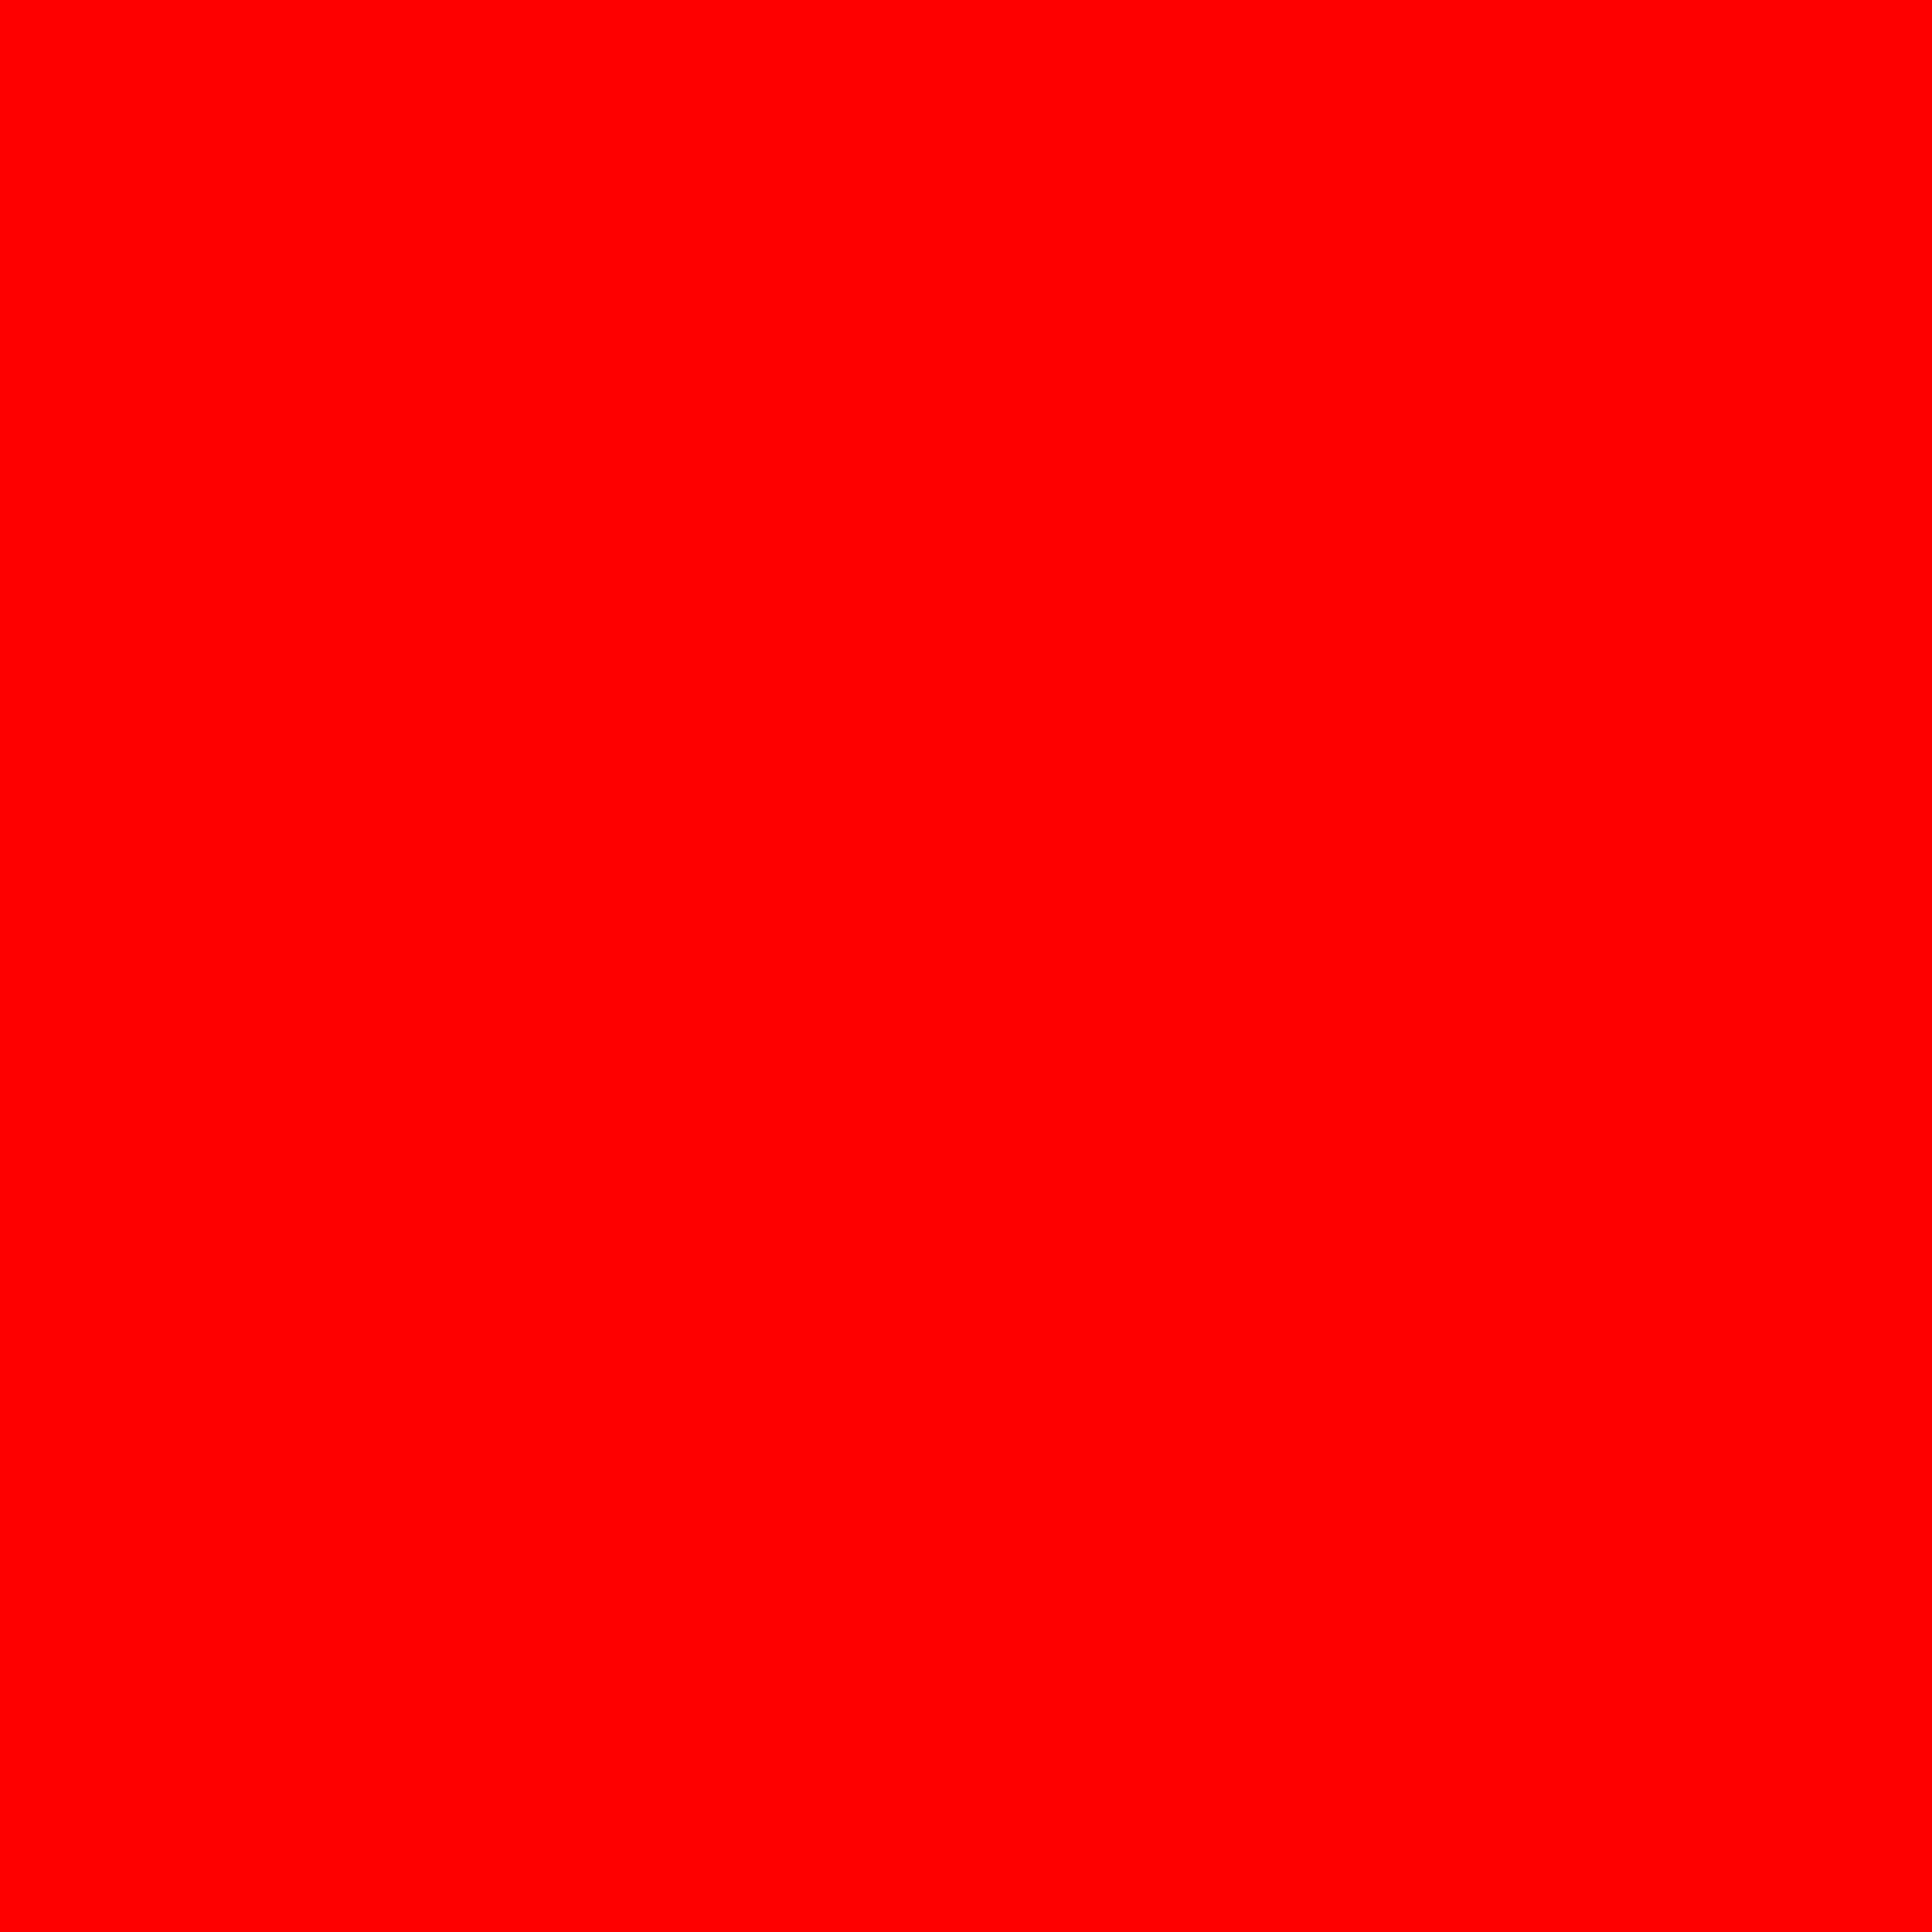 Red Square Png & Free Red Square.png Transparent Images